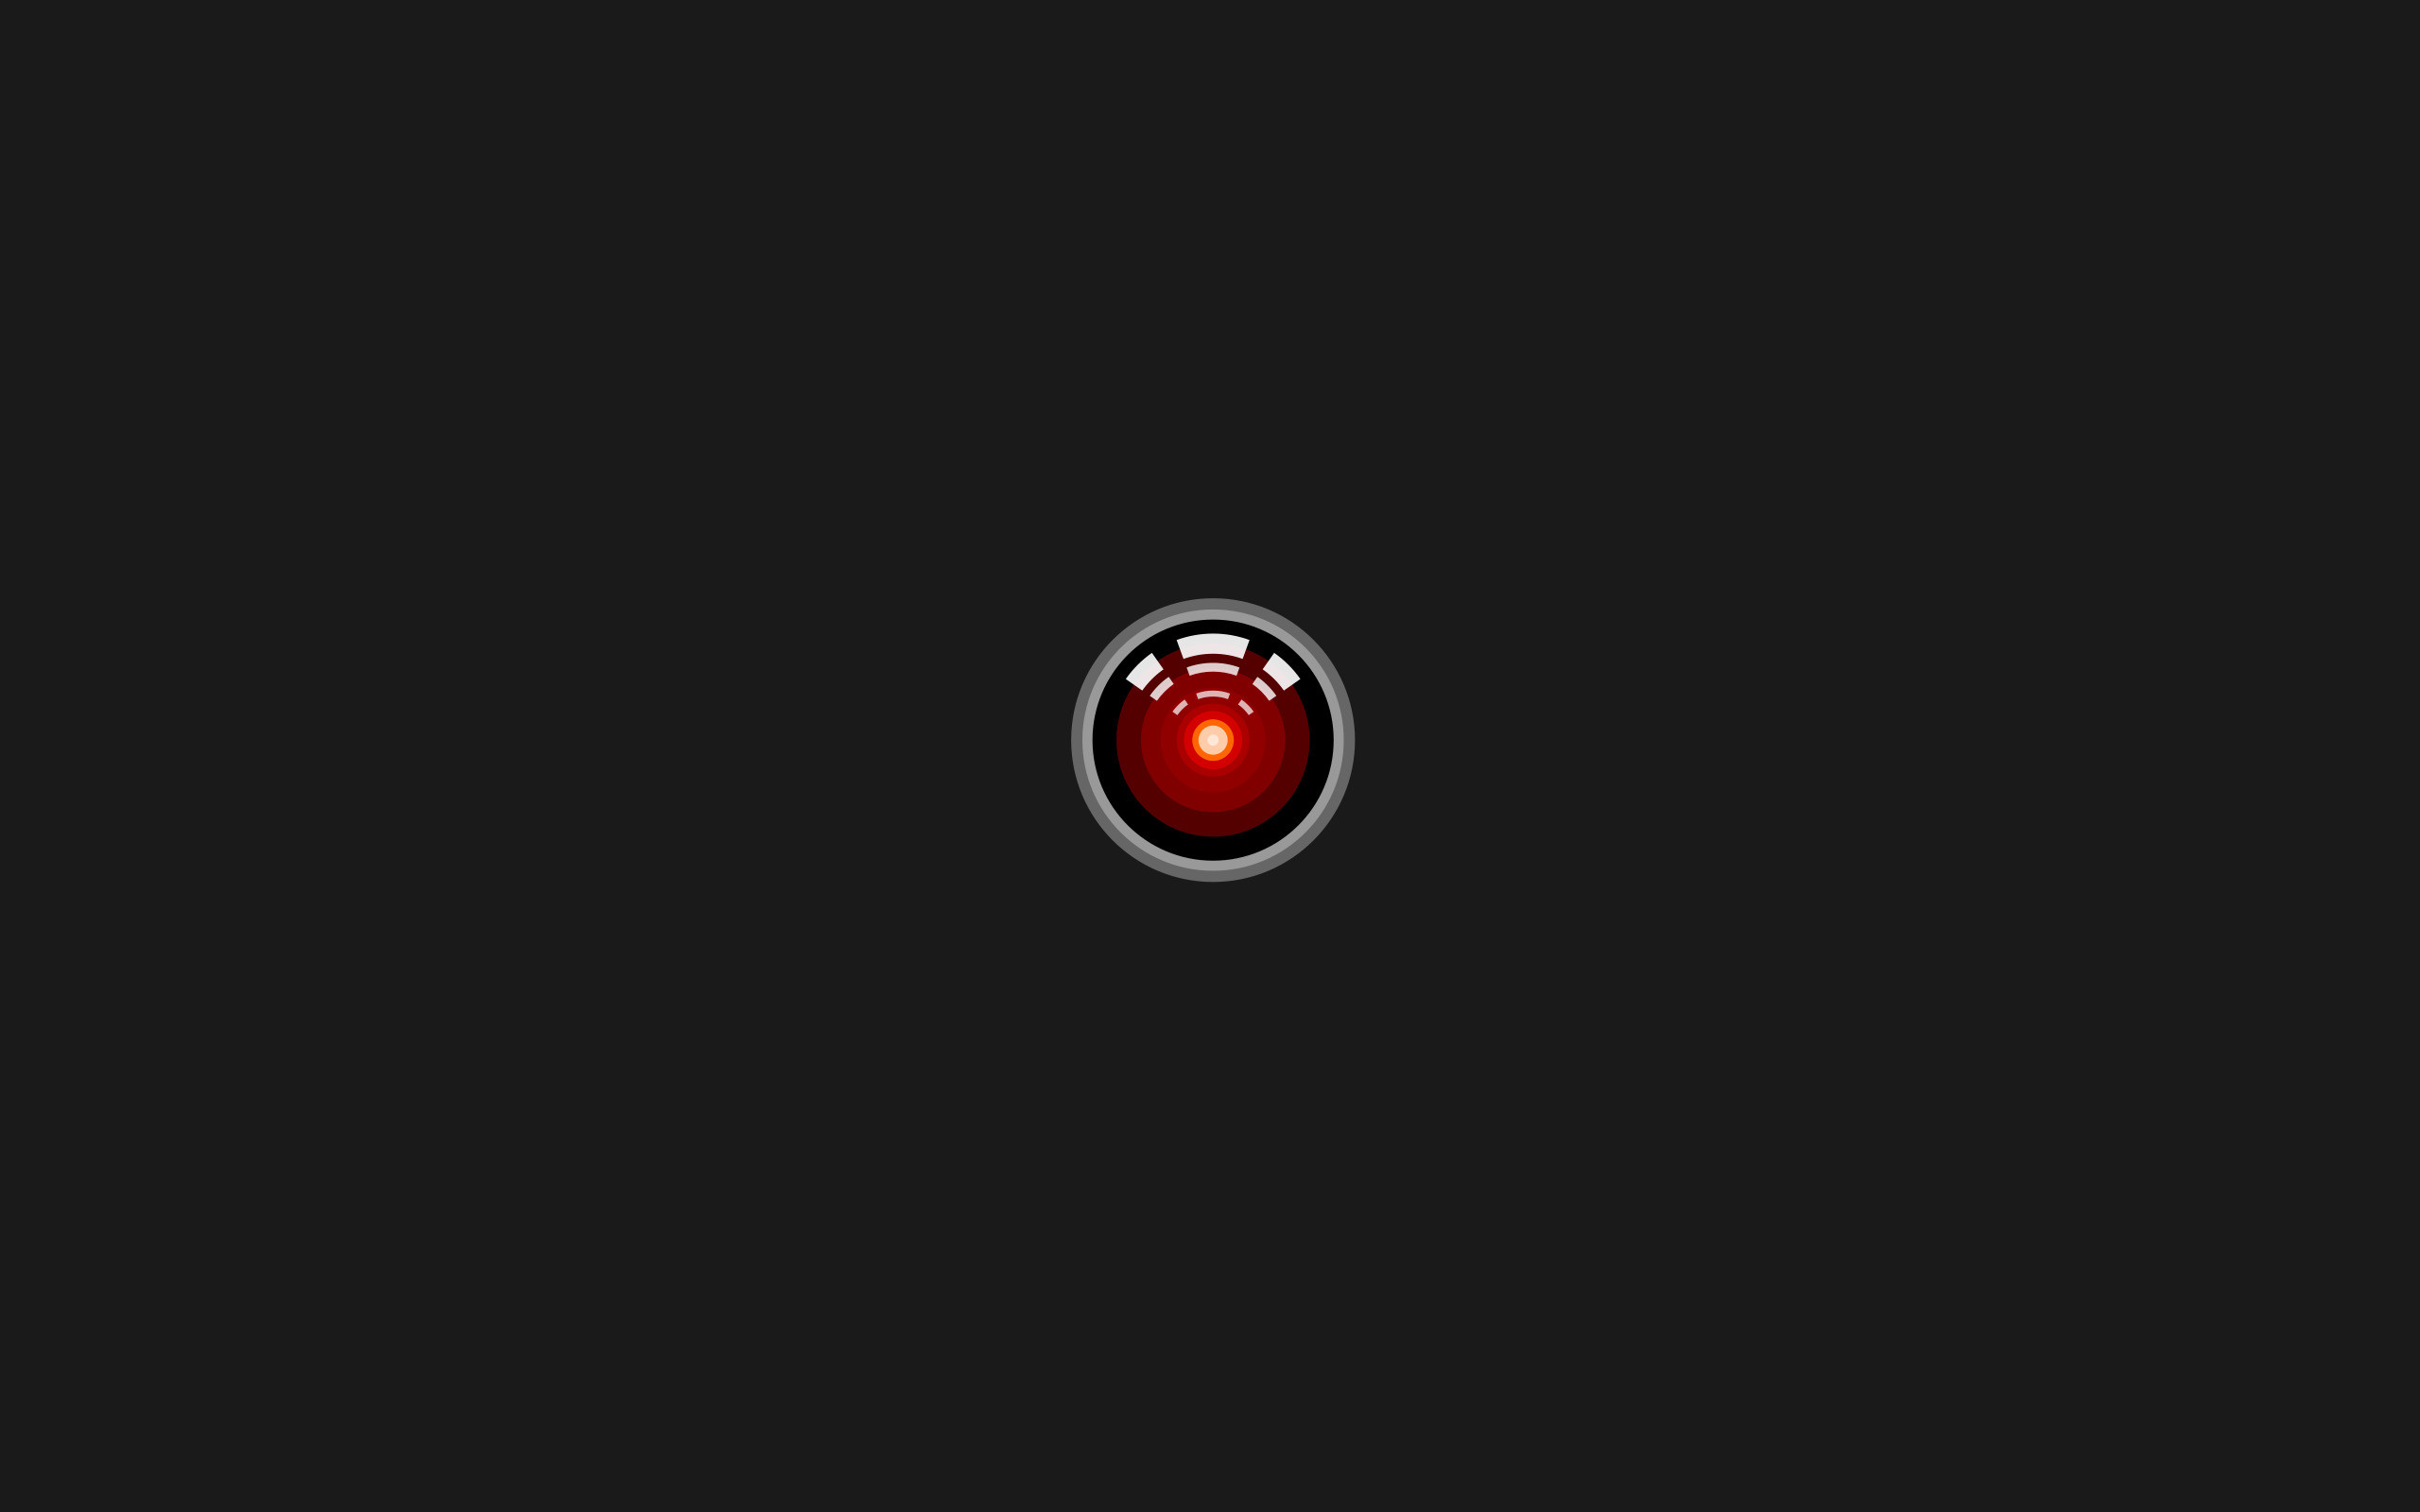 Hal 9000 wallpaper 73 images - 2001 a space odyssey wallpaper ...